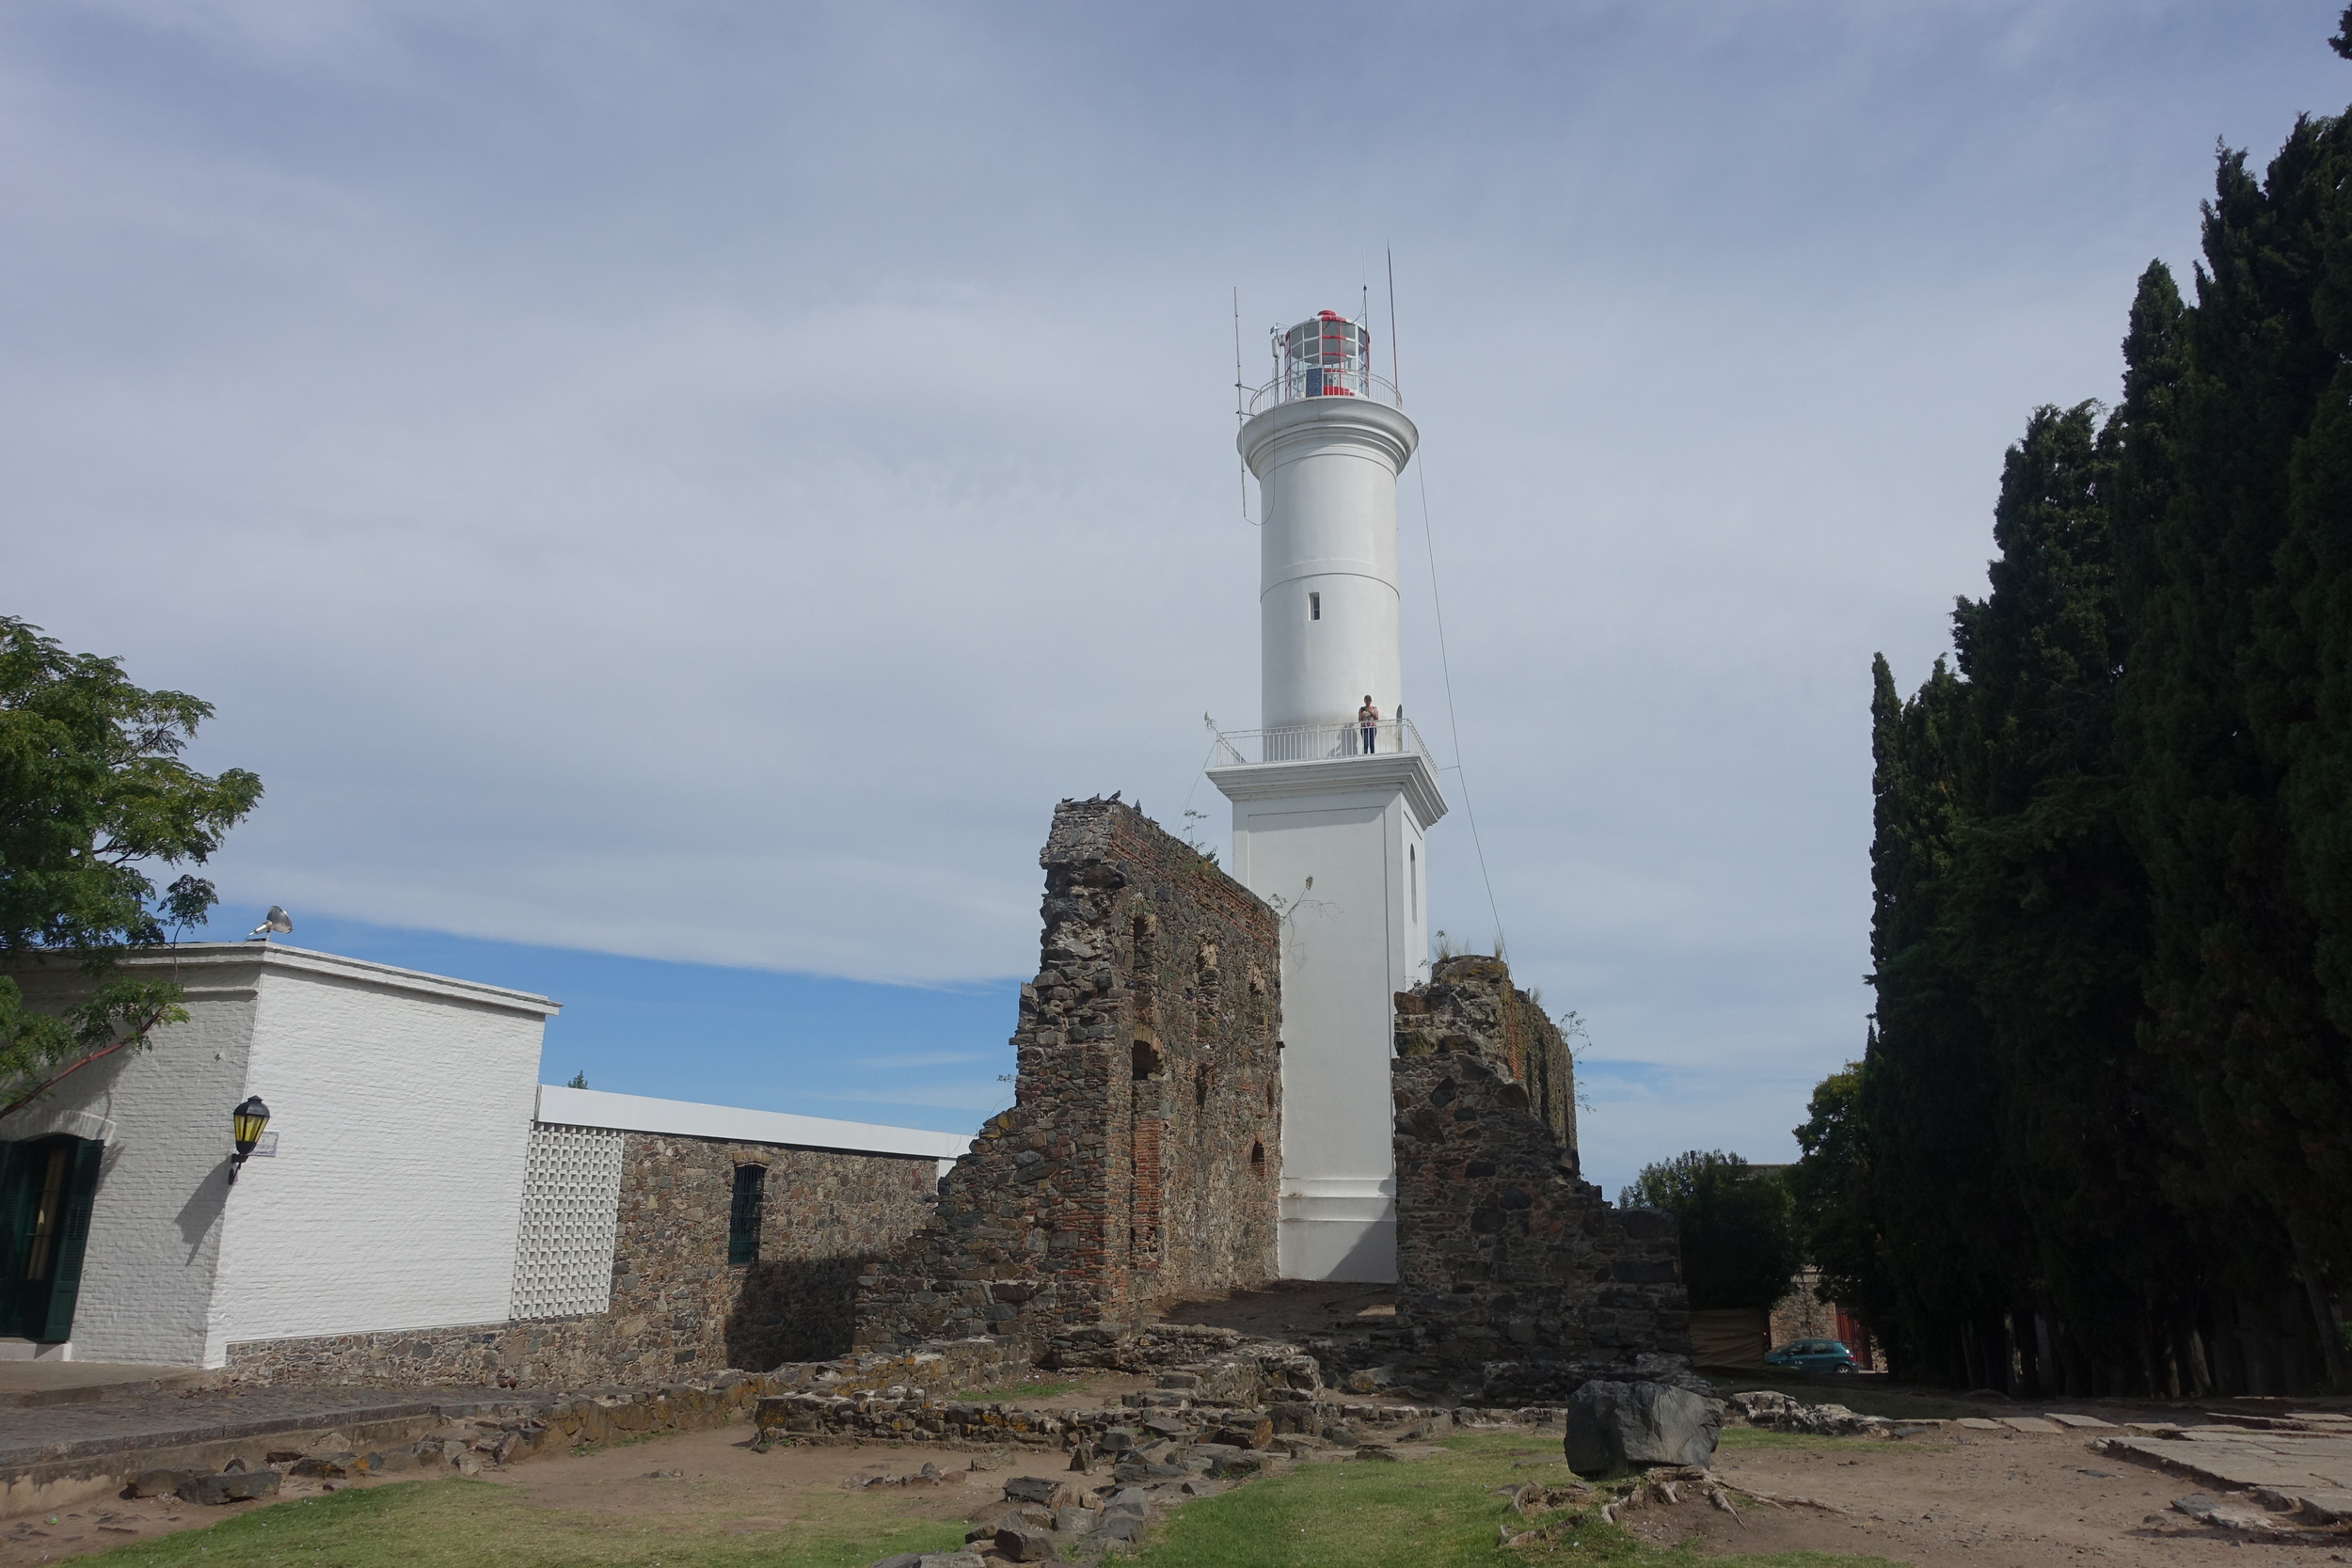 lighthouse built on the ruins of Convento de san francisco (17th century)